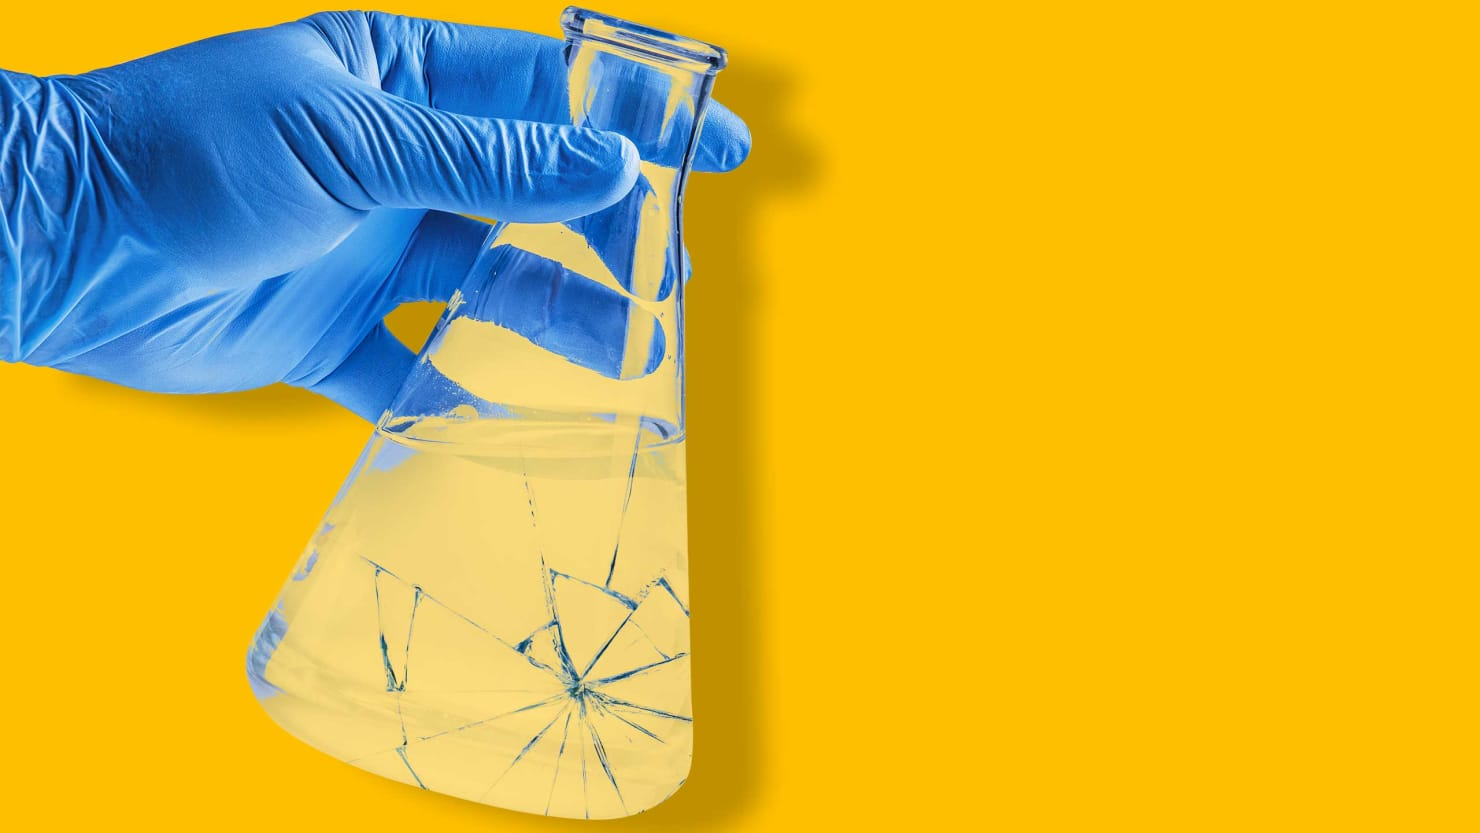 blue gloved hand holding beaker on yellow background president donald trump barack obama office of science and technology ostp